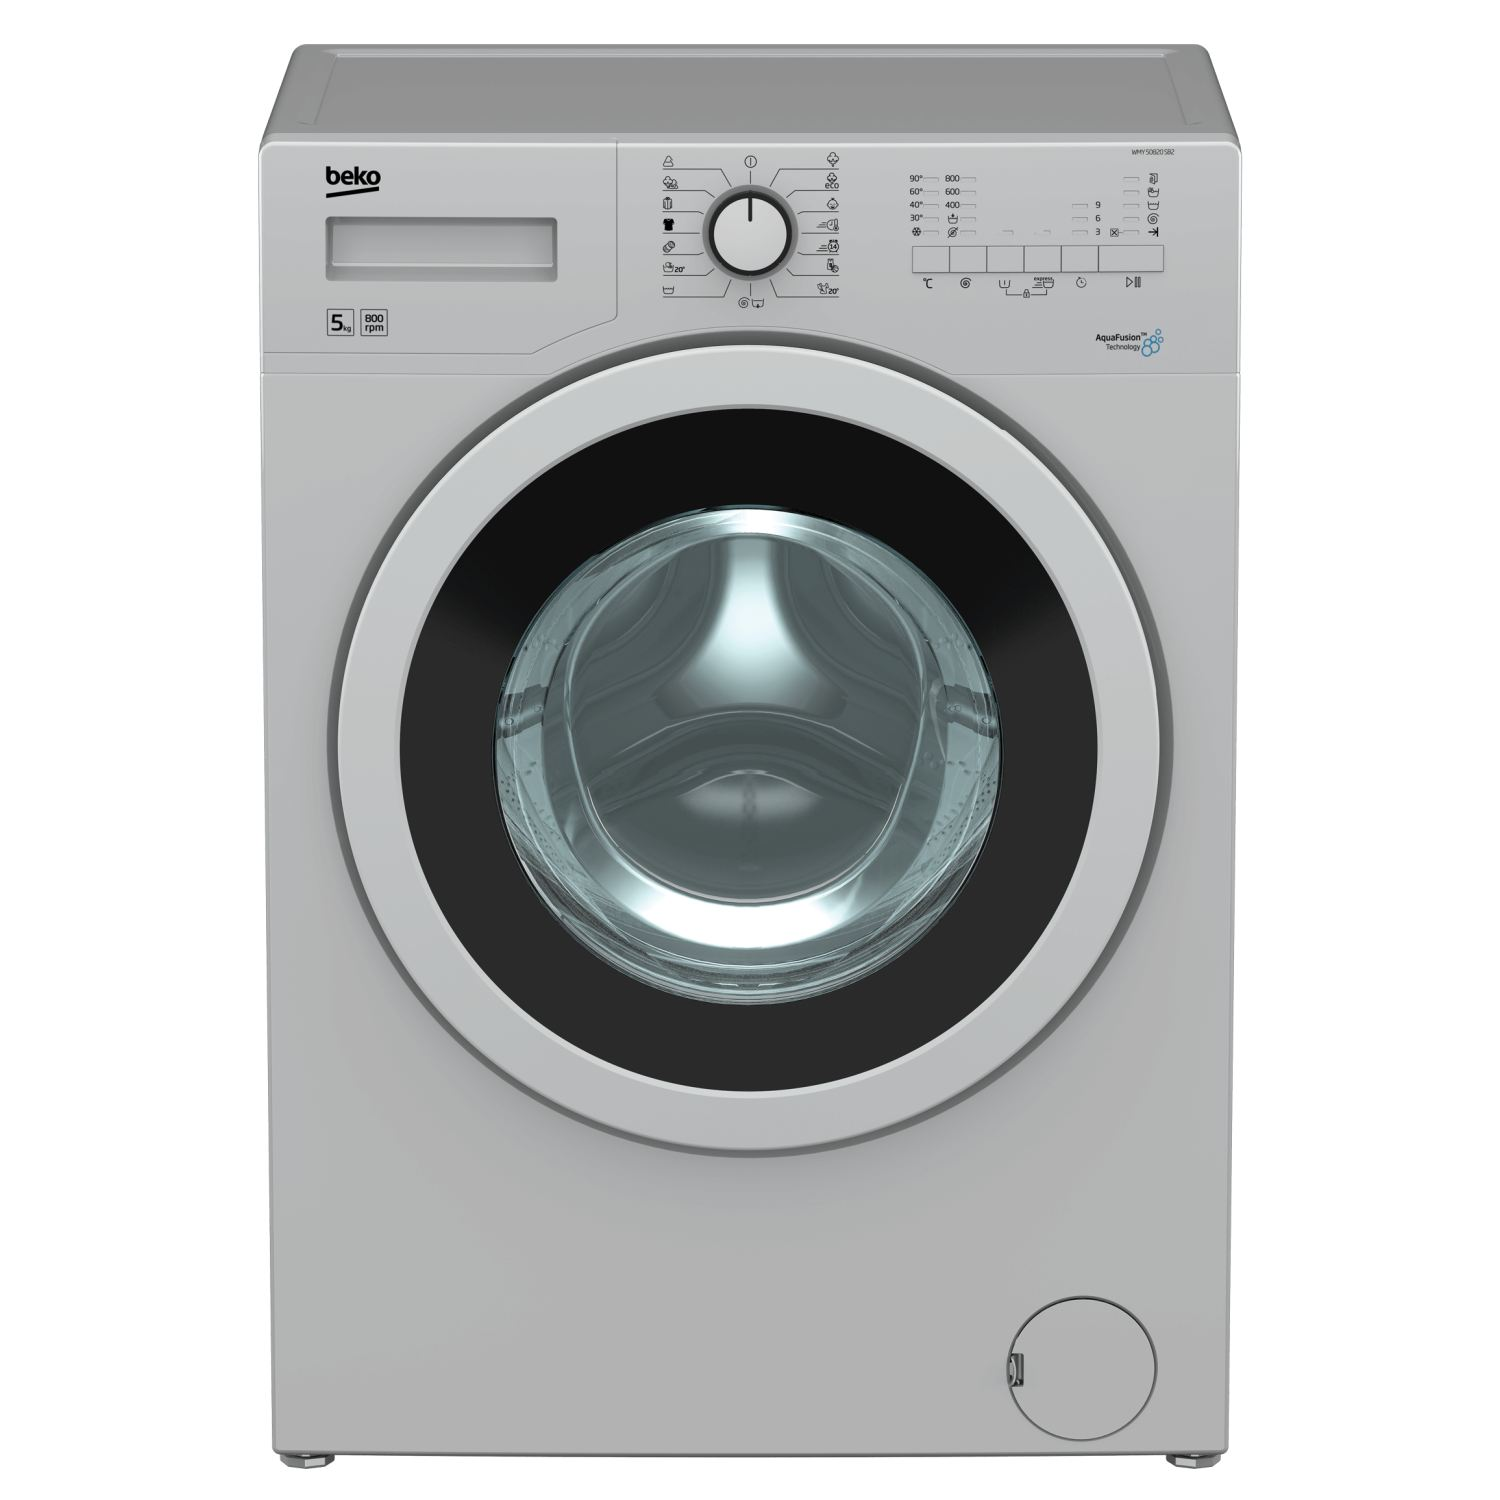 Washing Machine 5 kilo